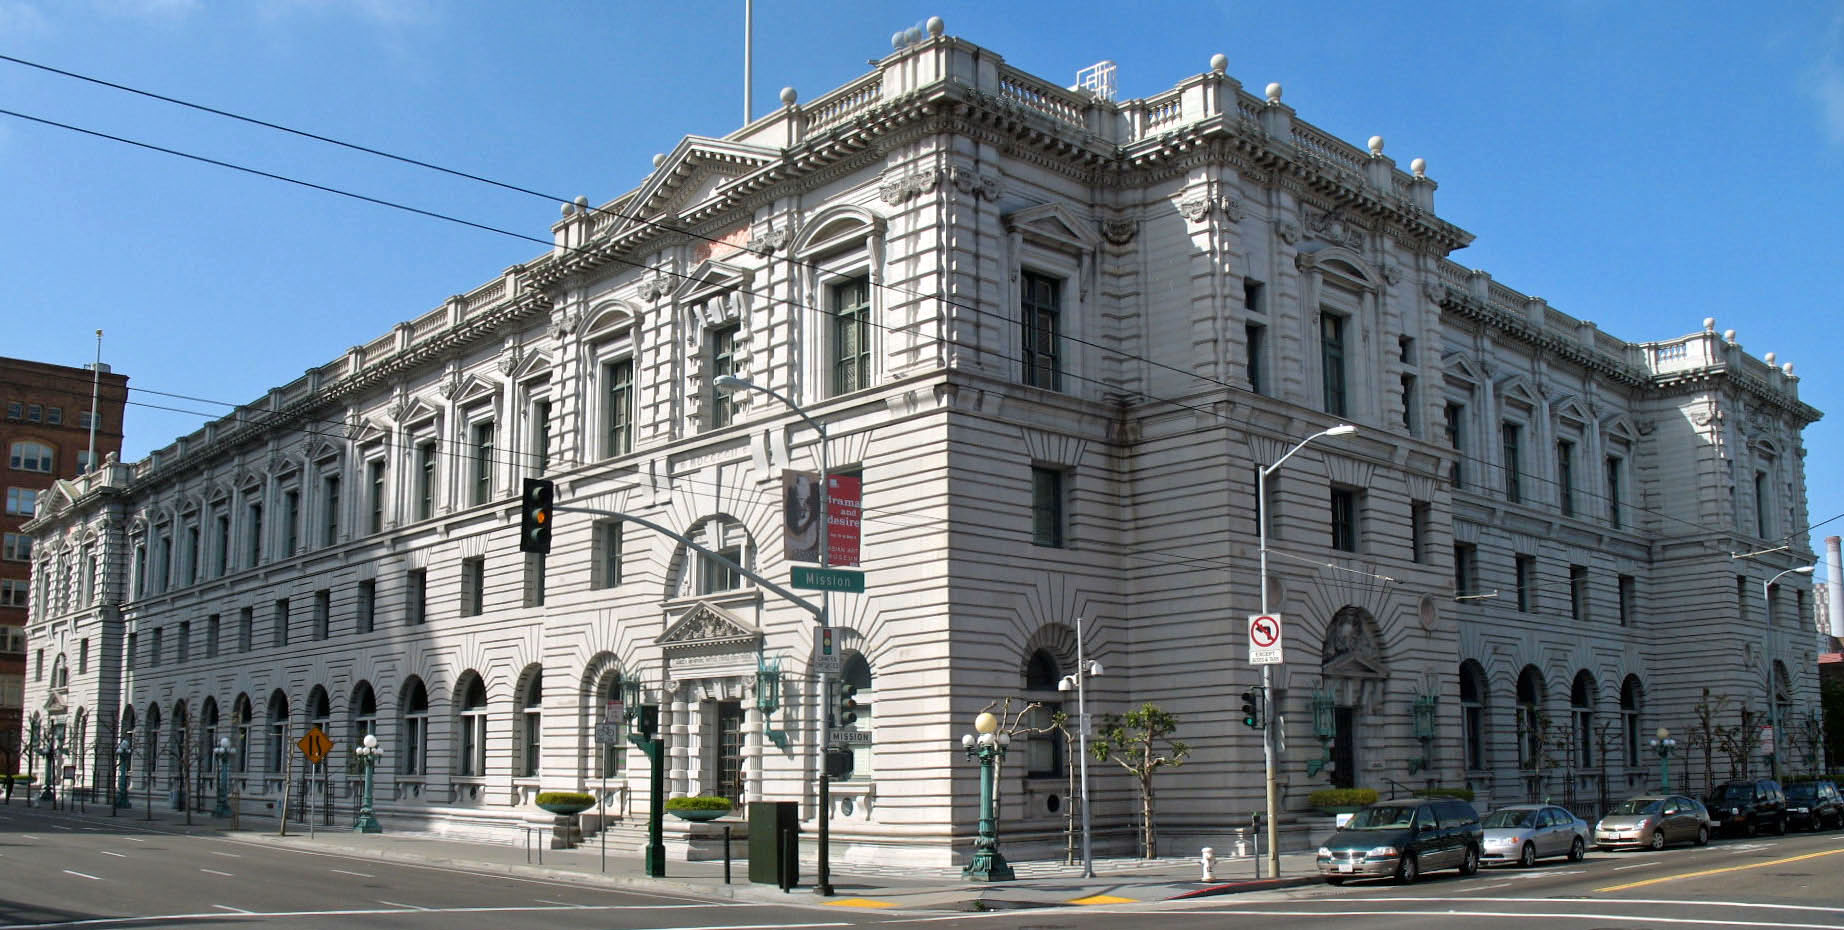 U.S. Post Office & Courthouse, 7th & Mission Street, SF. Photo by Sanfranman59